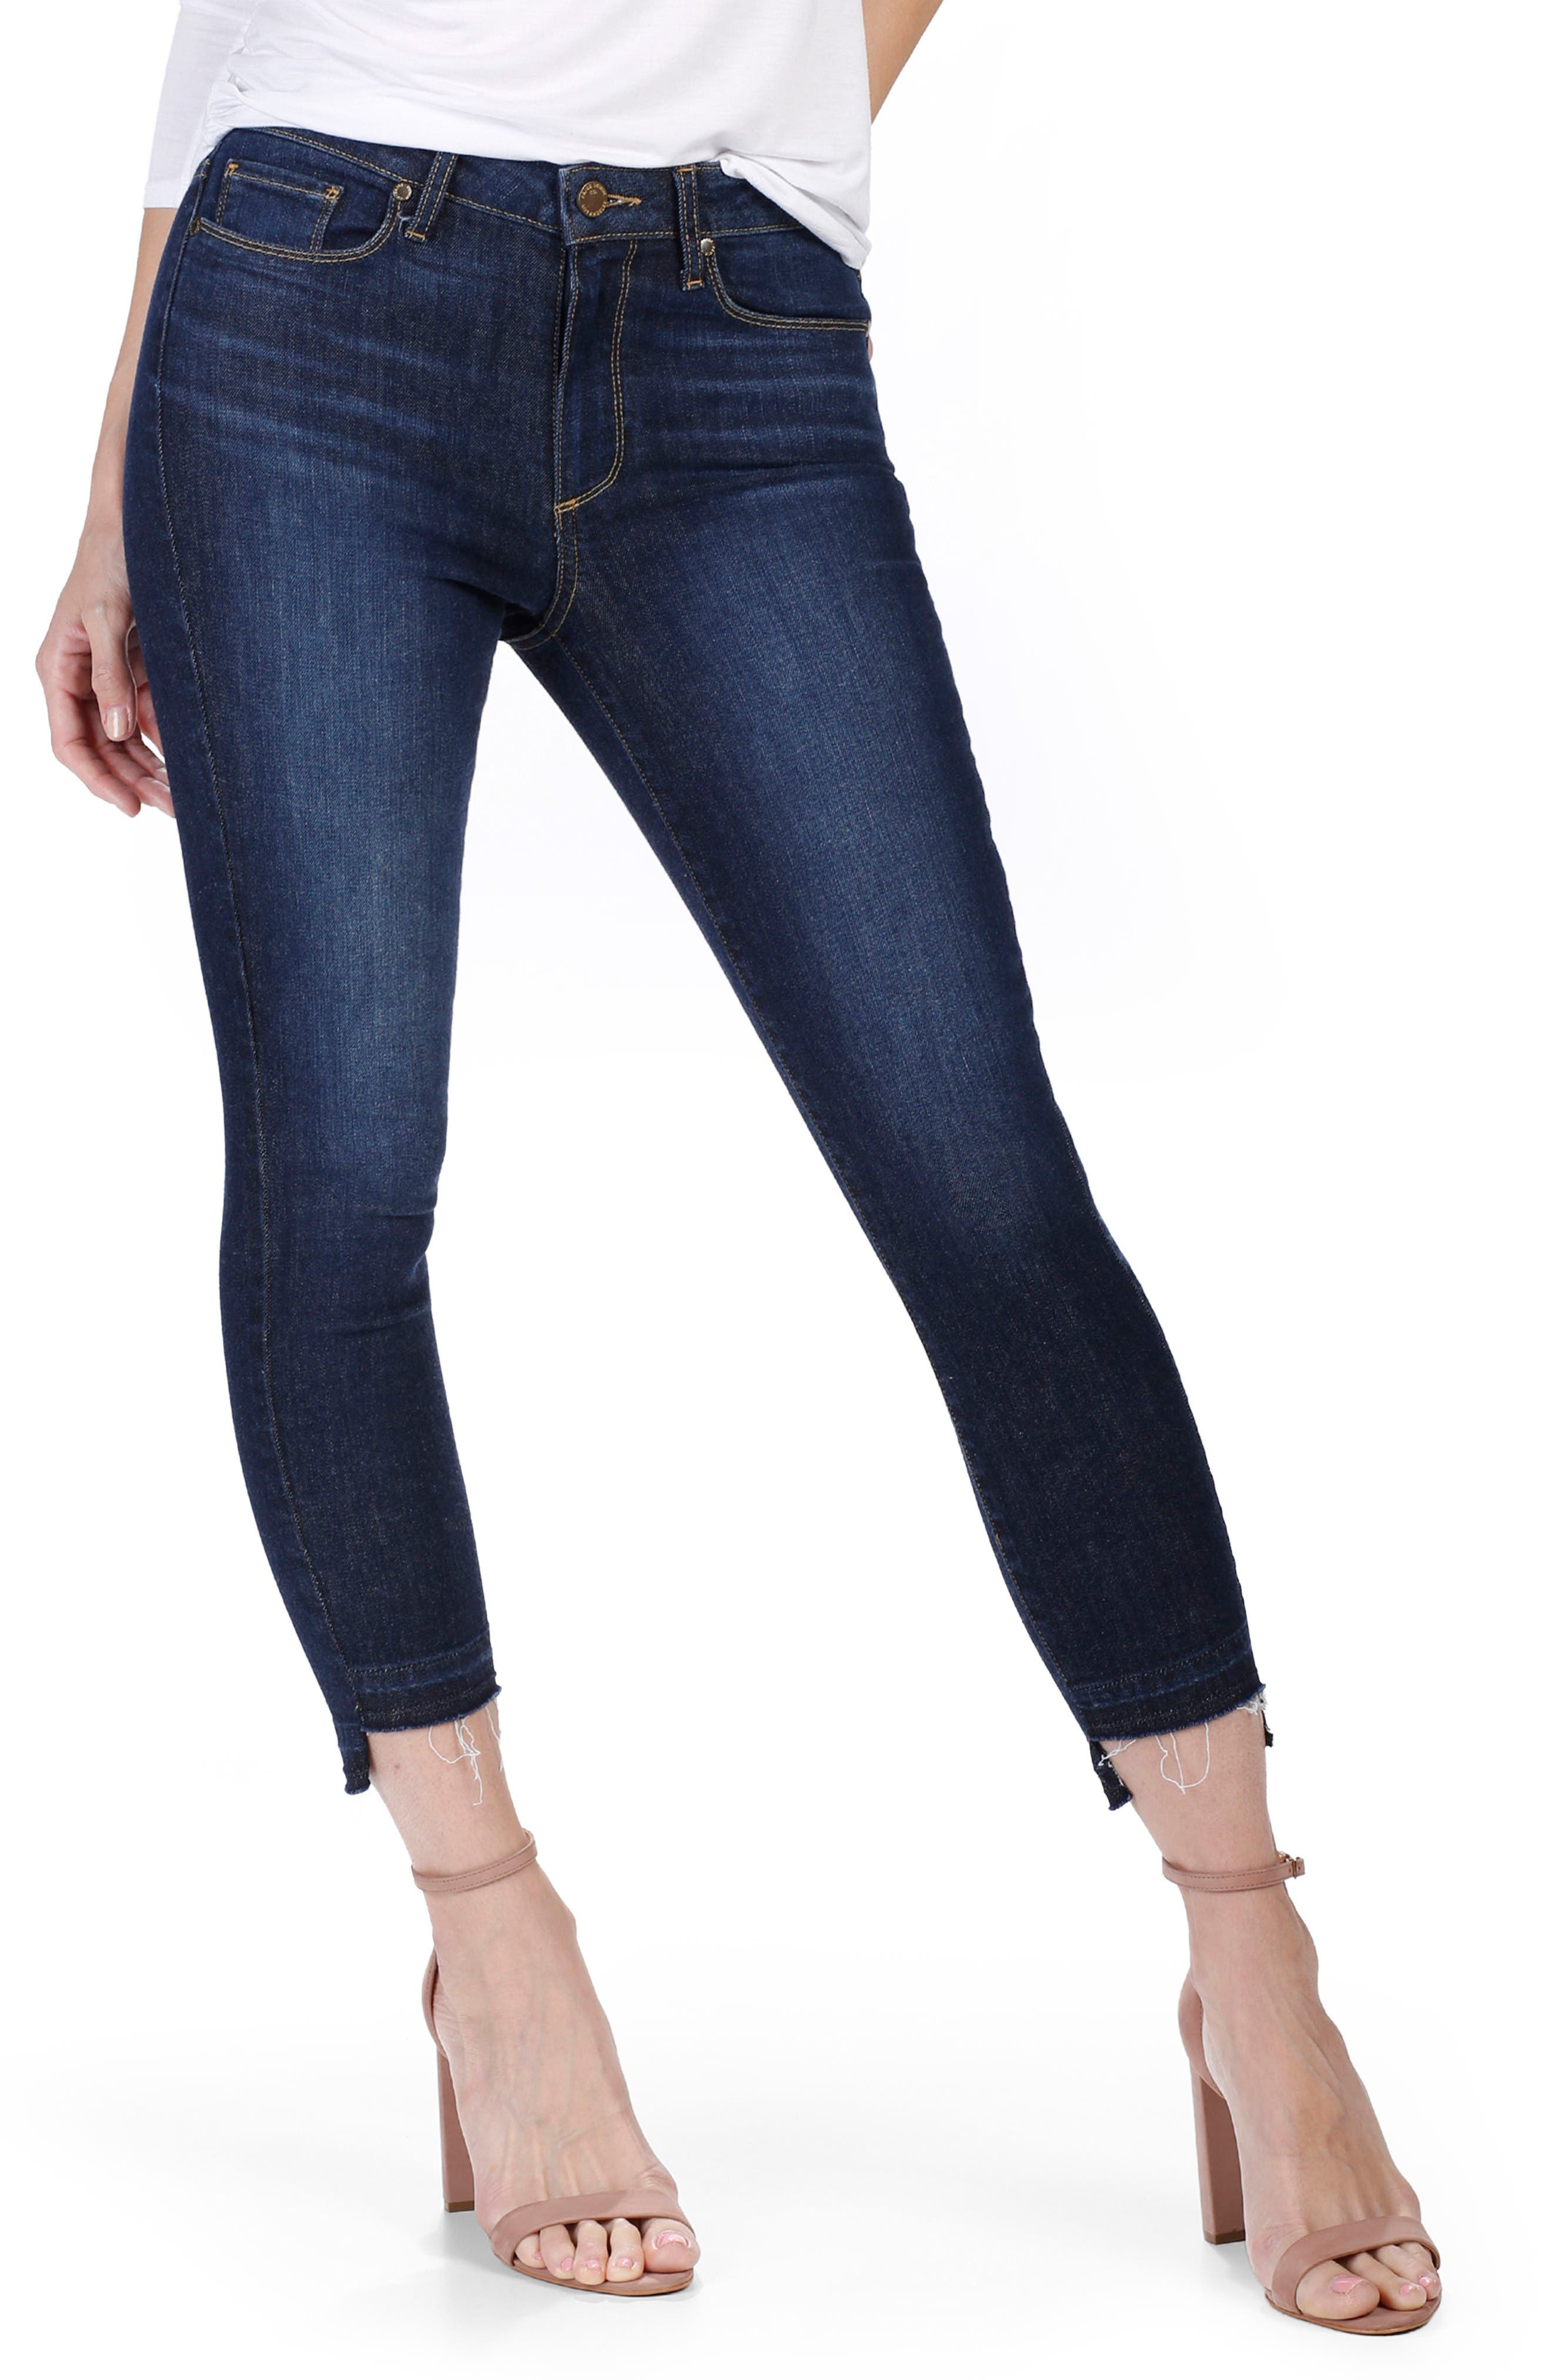 Alternate Image 1 Selected - PAIGE Hoxton High Waist Crop Ultra Skinny Jeans (Emery)